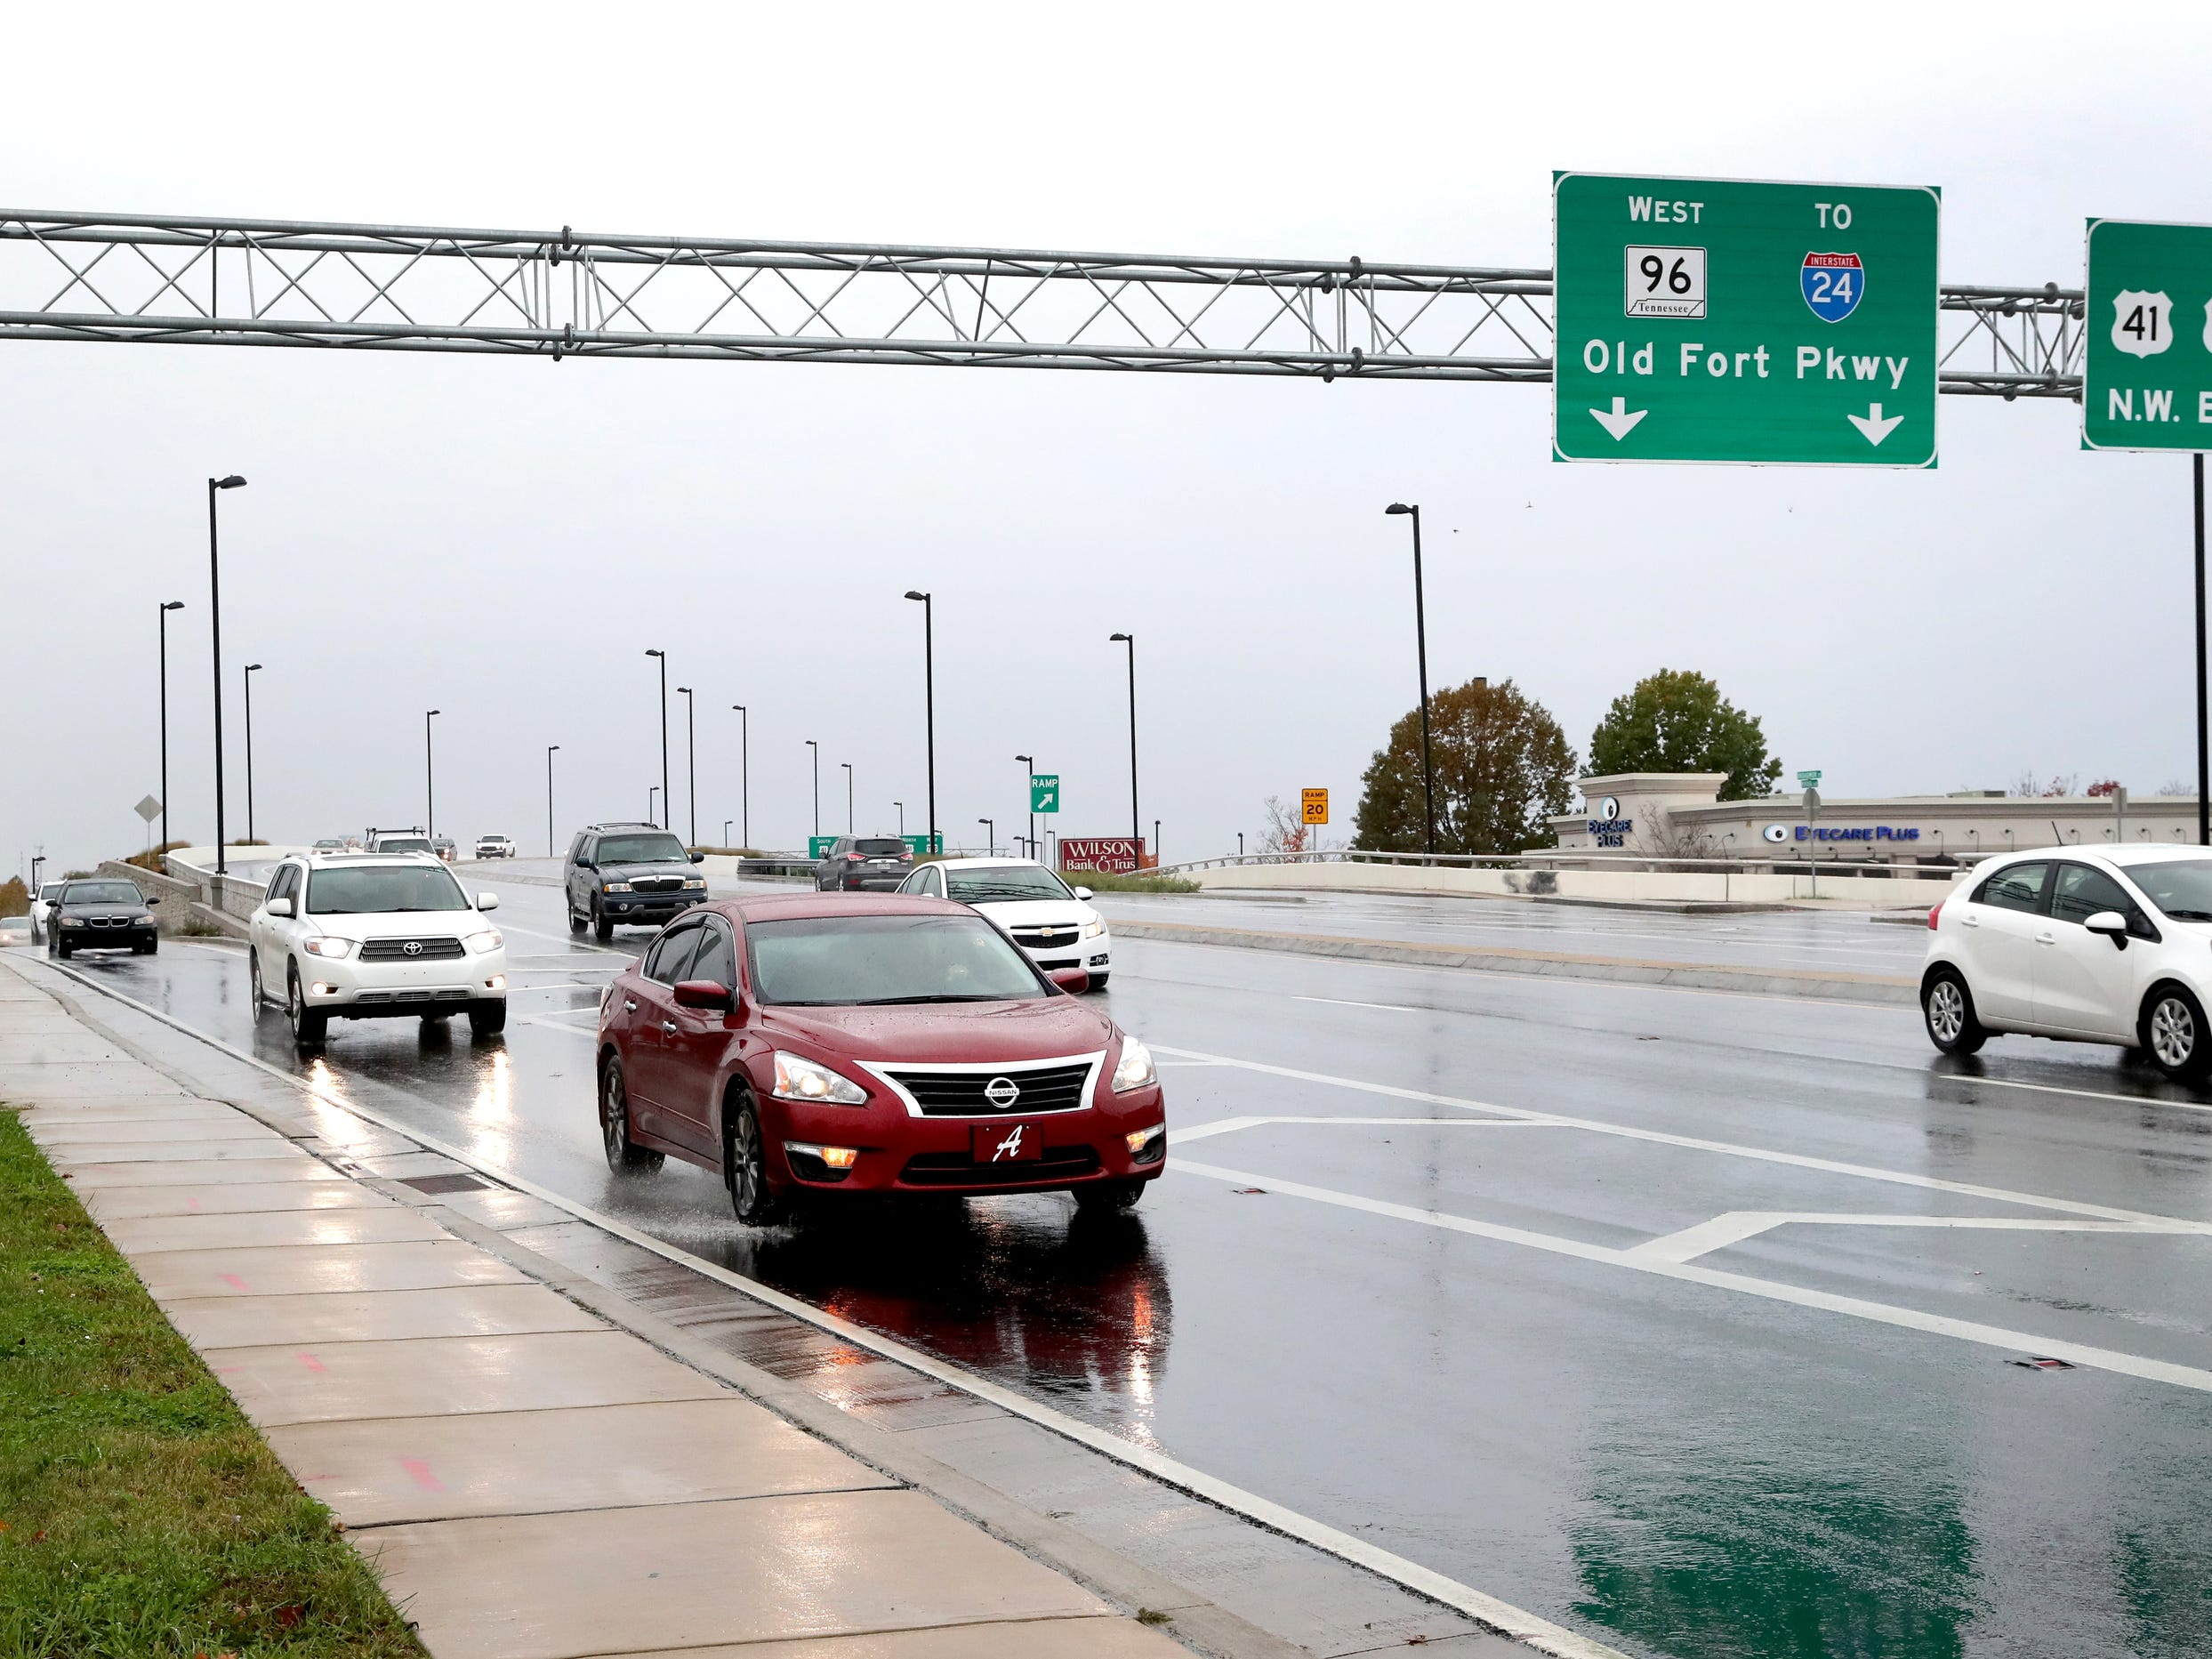 Traffic flows over the Bridge over Broad bridge, on Wednesday, Nov. 7, 2018, that opened nearly a year ago in December of 2017.